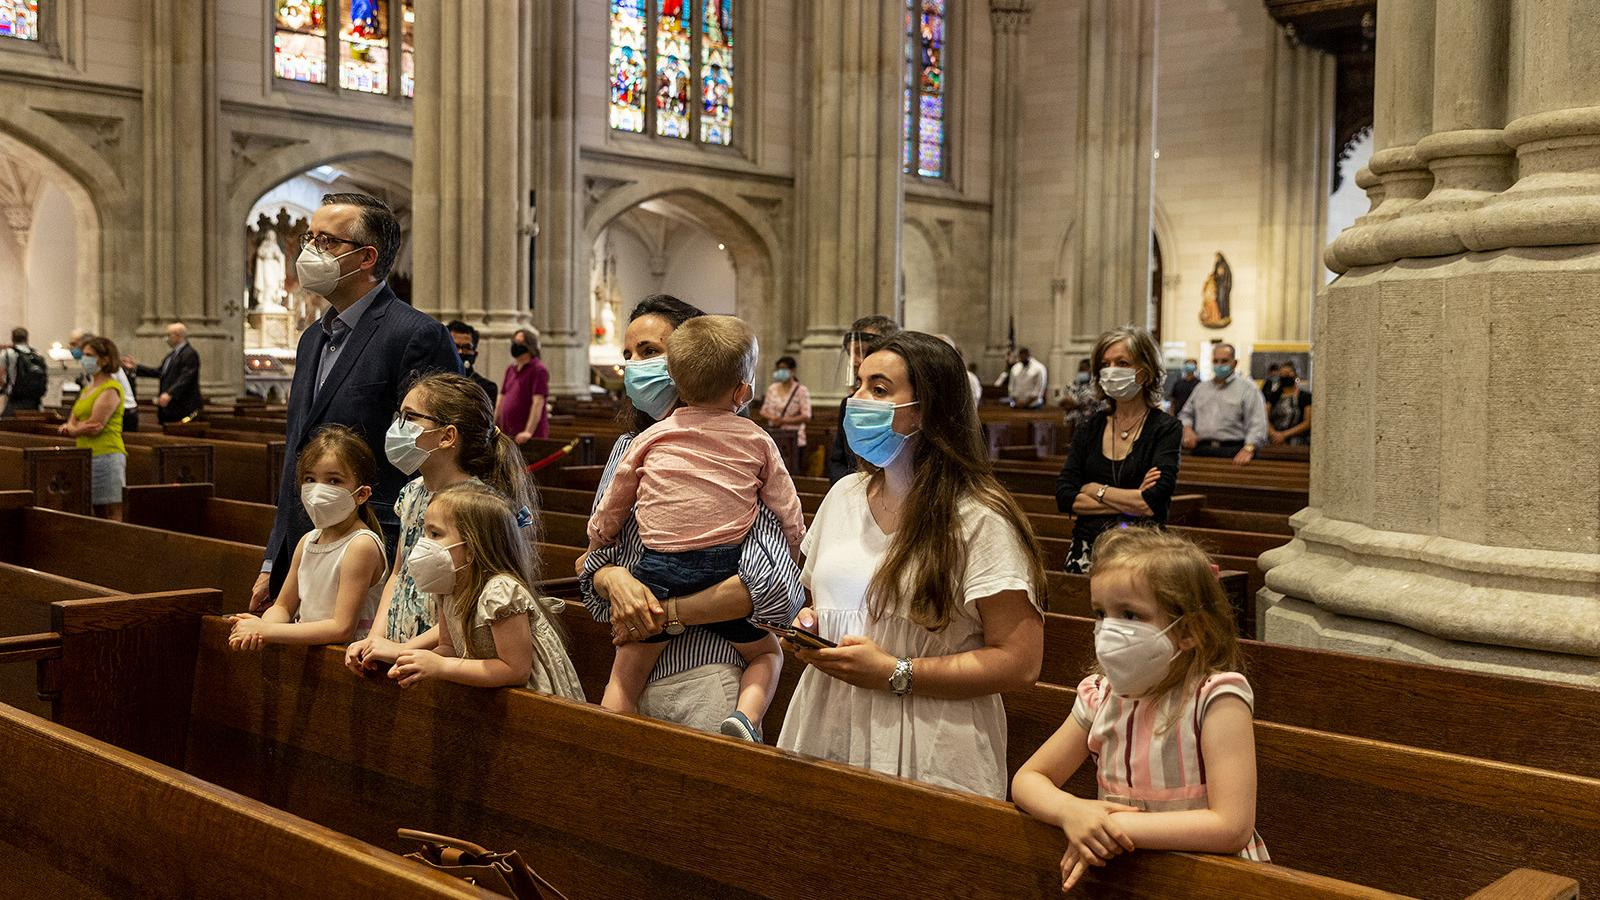 , Membership in US Churches Has Dropped to 47%, The Politicus